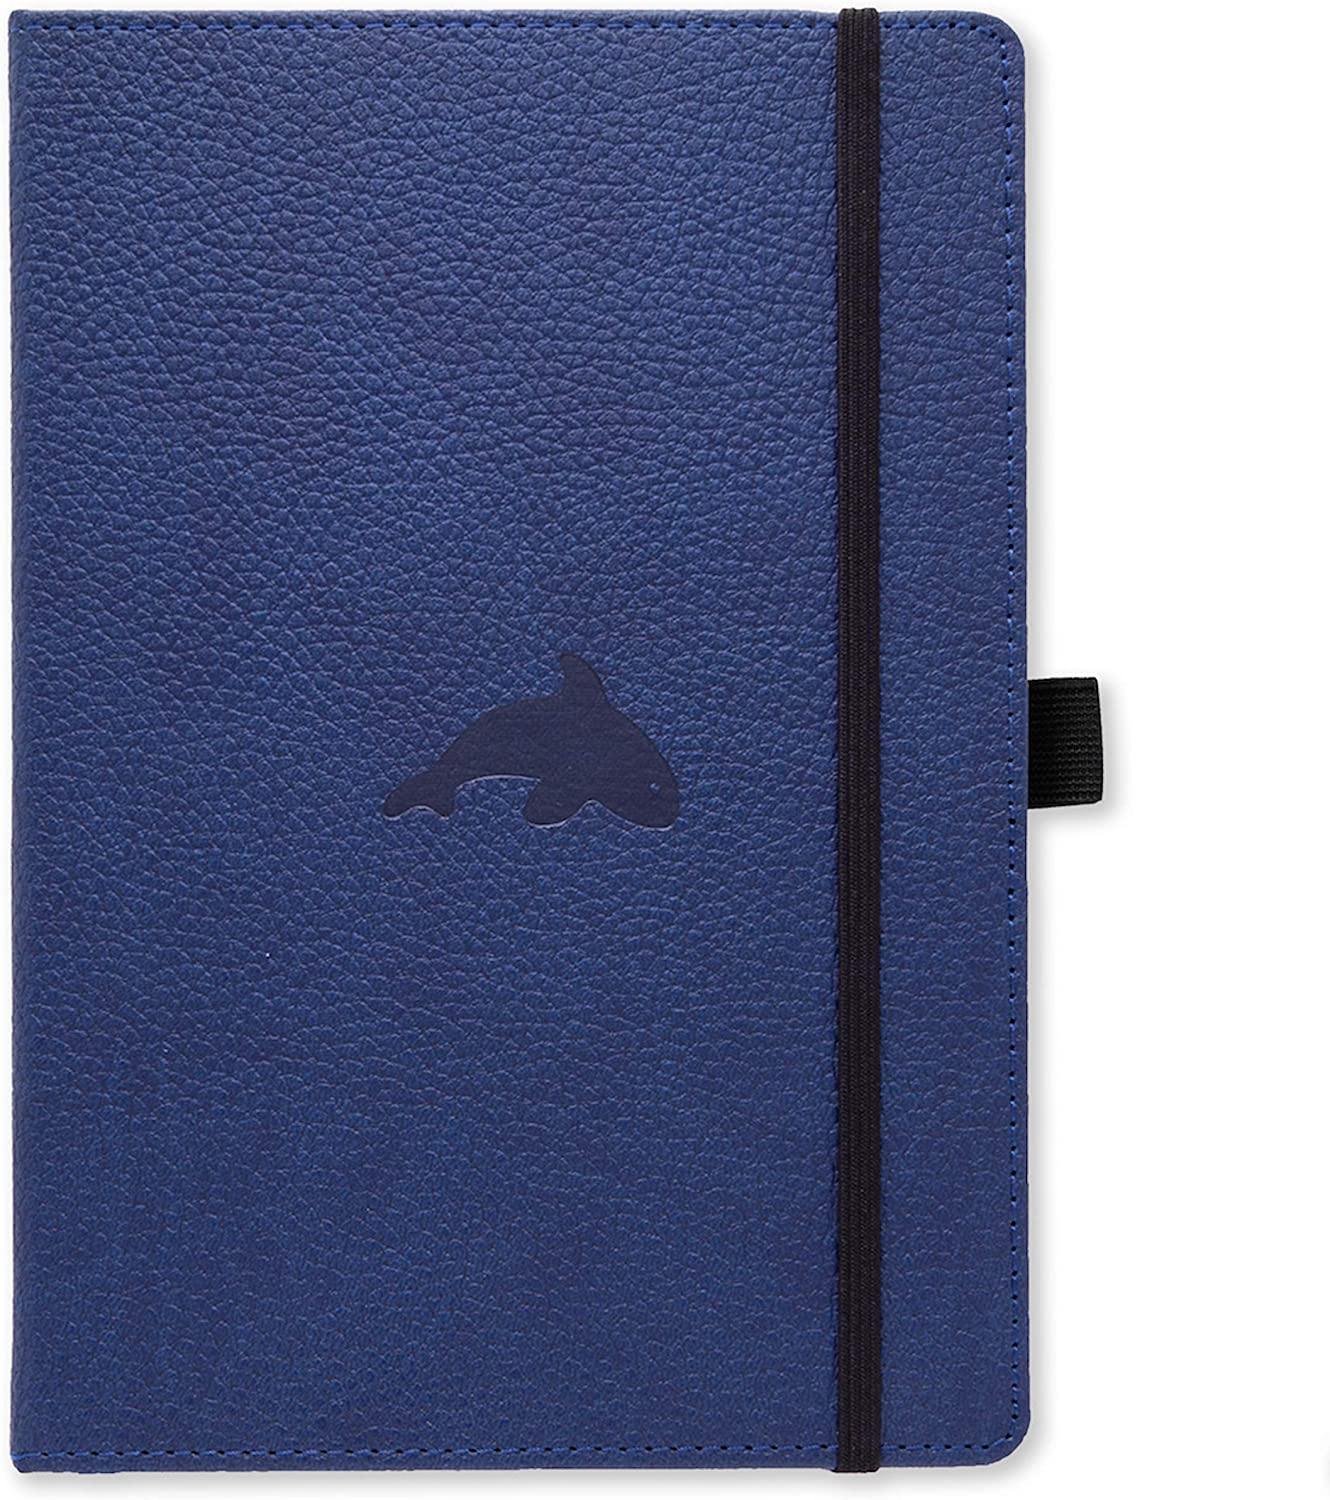 Dingbats Wildlife Squared XL A4+ Hardcover Notebook Perforated 100gsm Ink-Proof Paper Elastic Closure Pen Holder Blue Whale Pocket Bookmark PU Leather